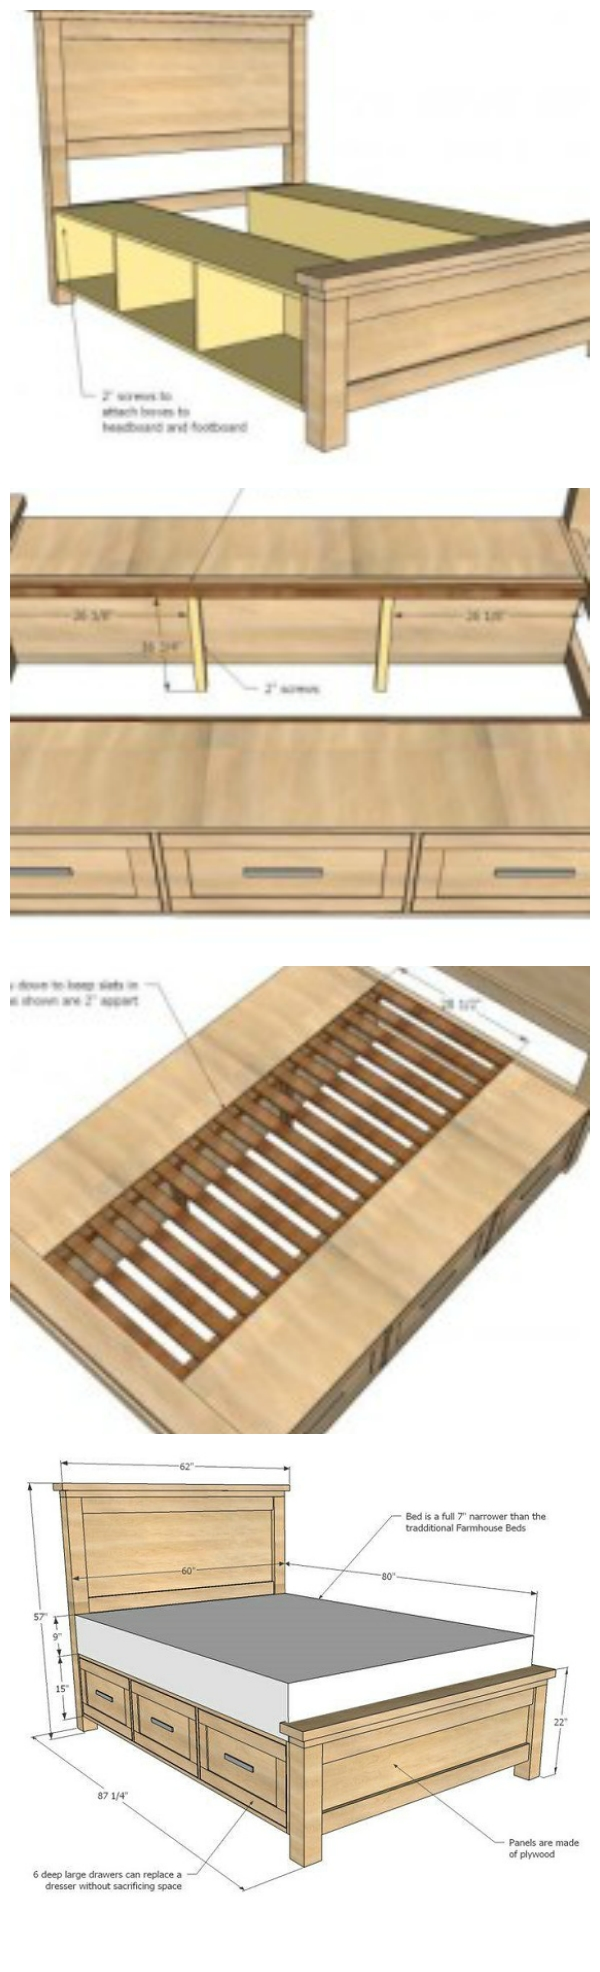 Diy Farmhouse Storage Bed With Drawers For The Home Pdf Wiring Boat Trailer Lights Flat Bottom Sale Bestdiywood